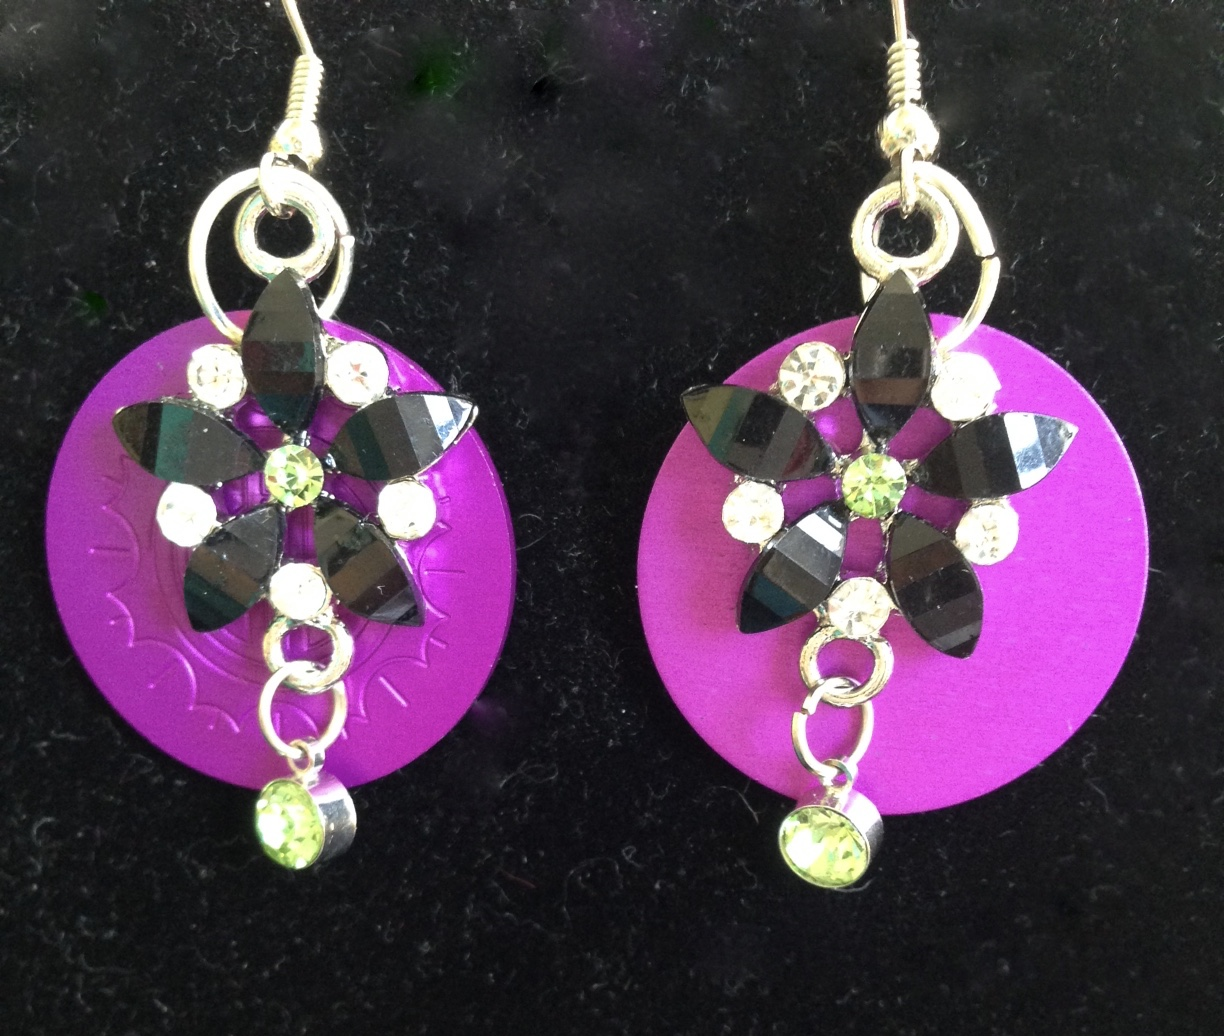 Purple, green stone flower earrings with purple disk